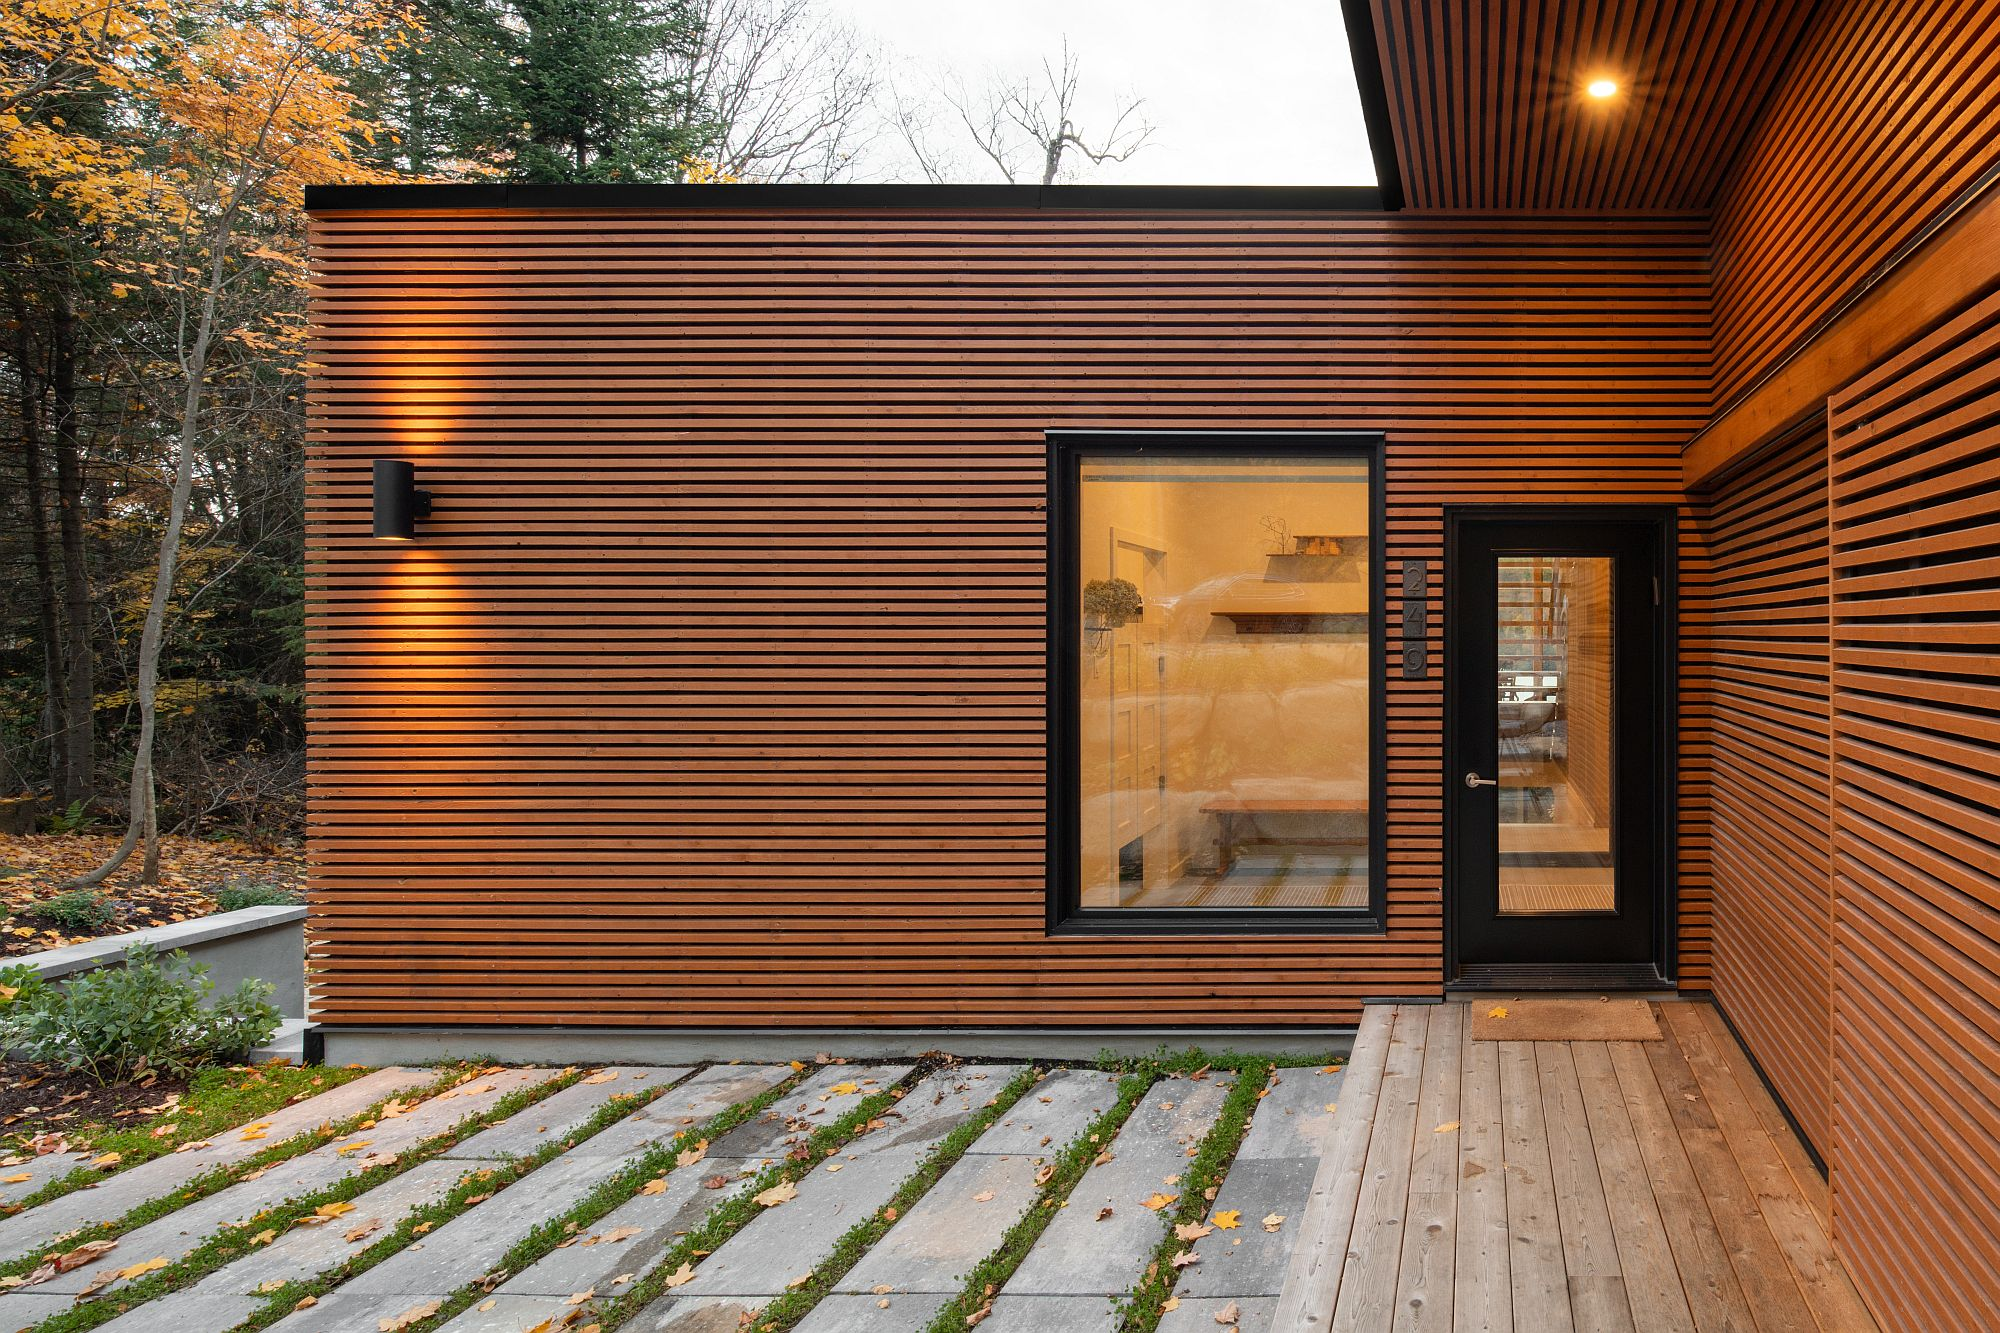 Charming exterior of the home with natural-looking finish combined with dark trims